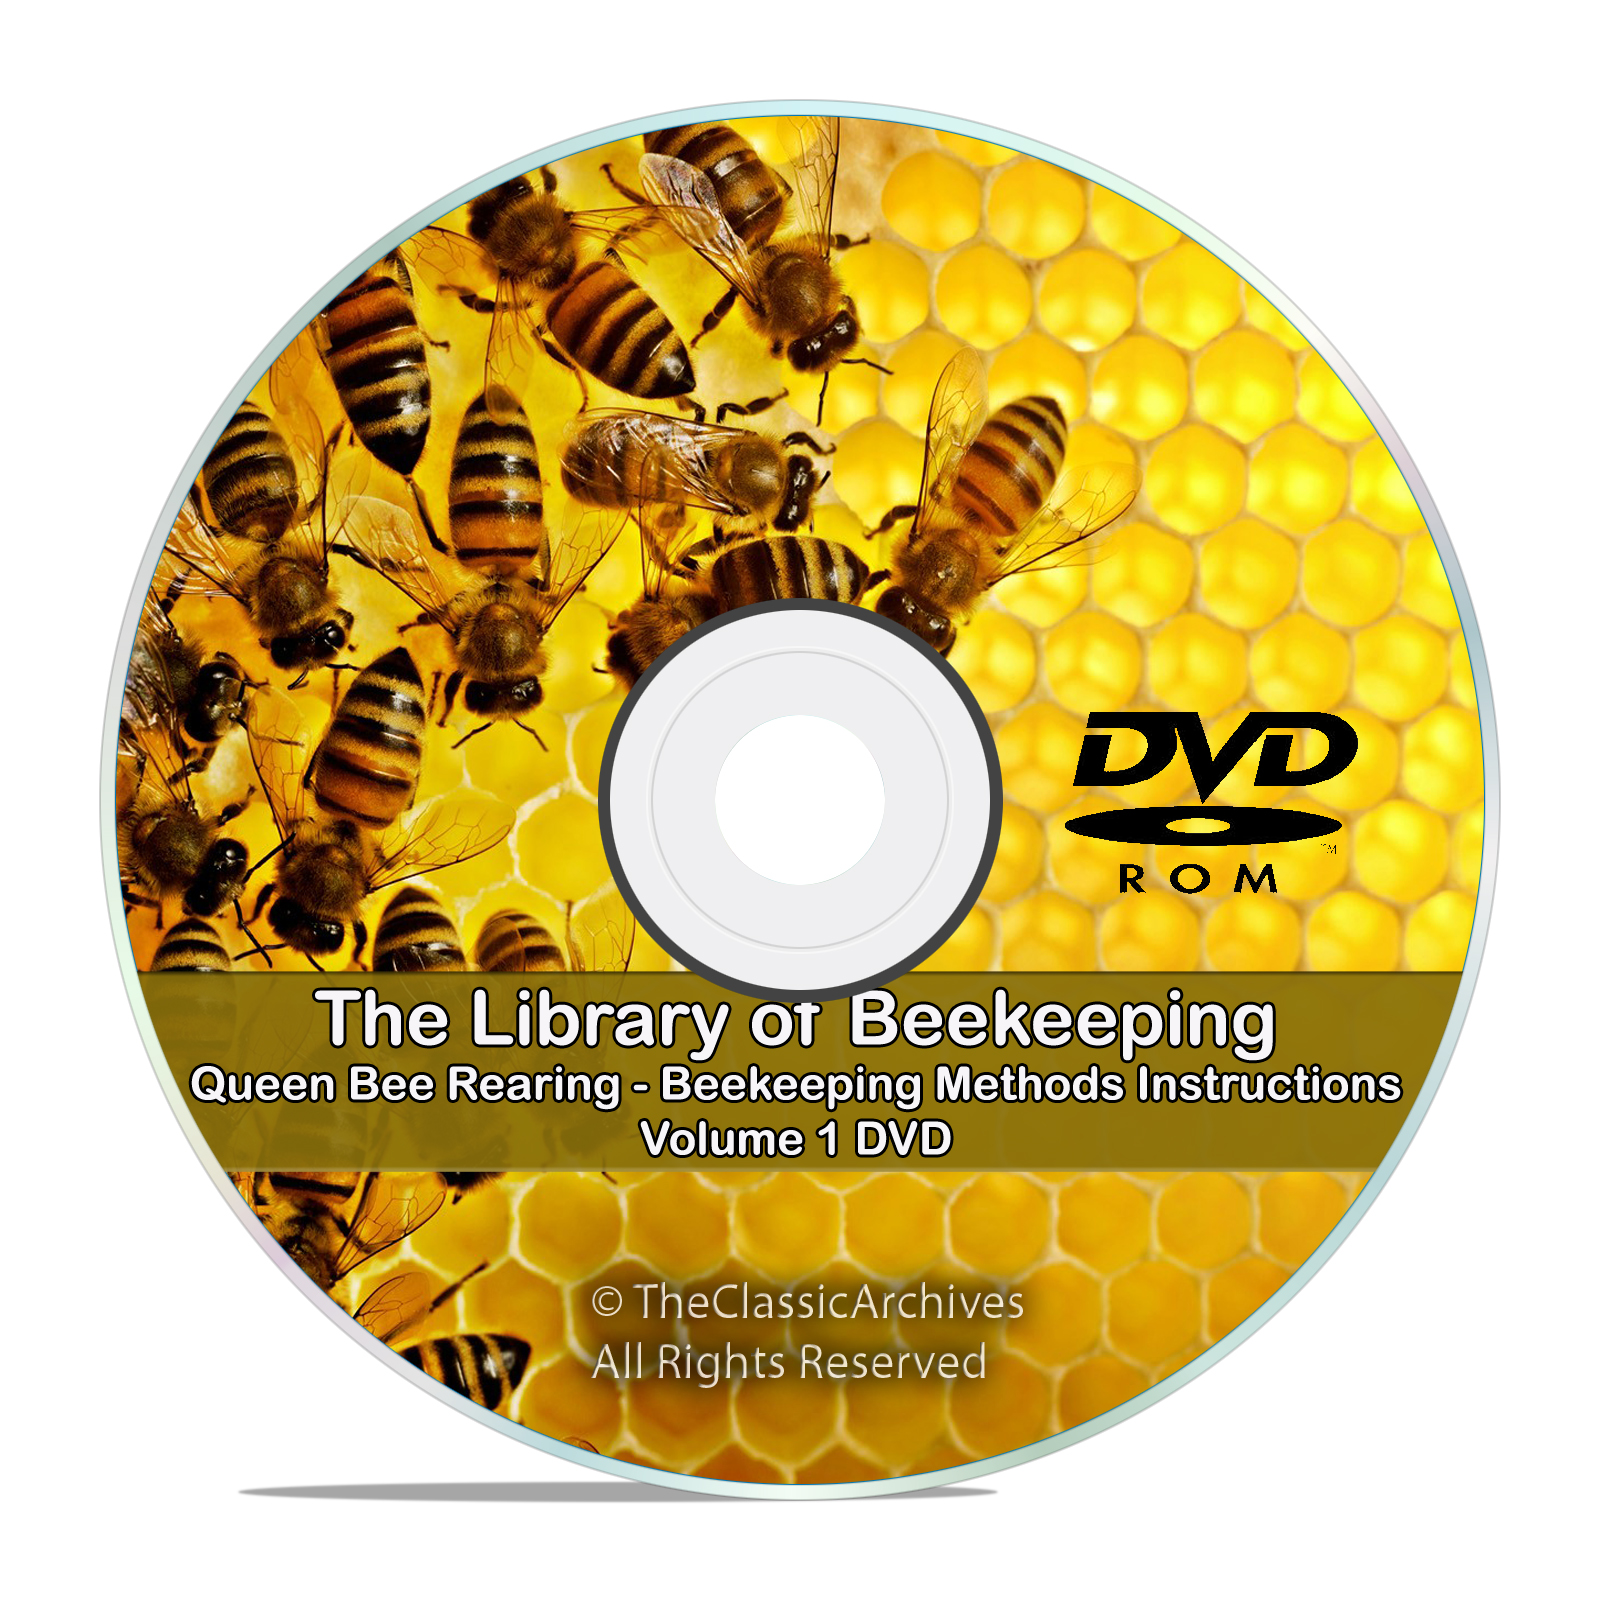 The Master Library of Beekeeping Rearing Queen Bees, Classic Bee Care DVD